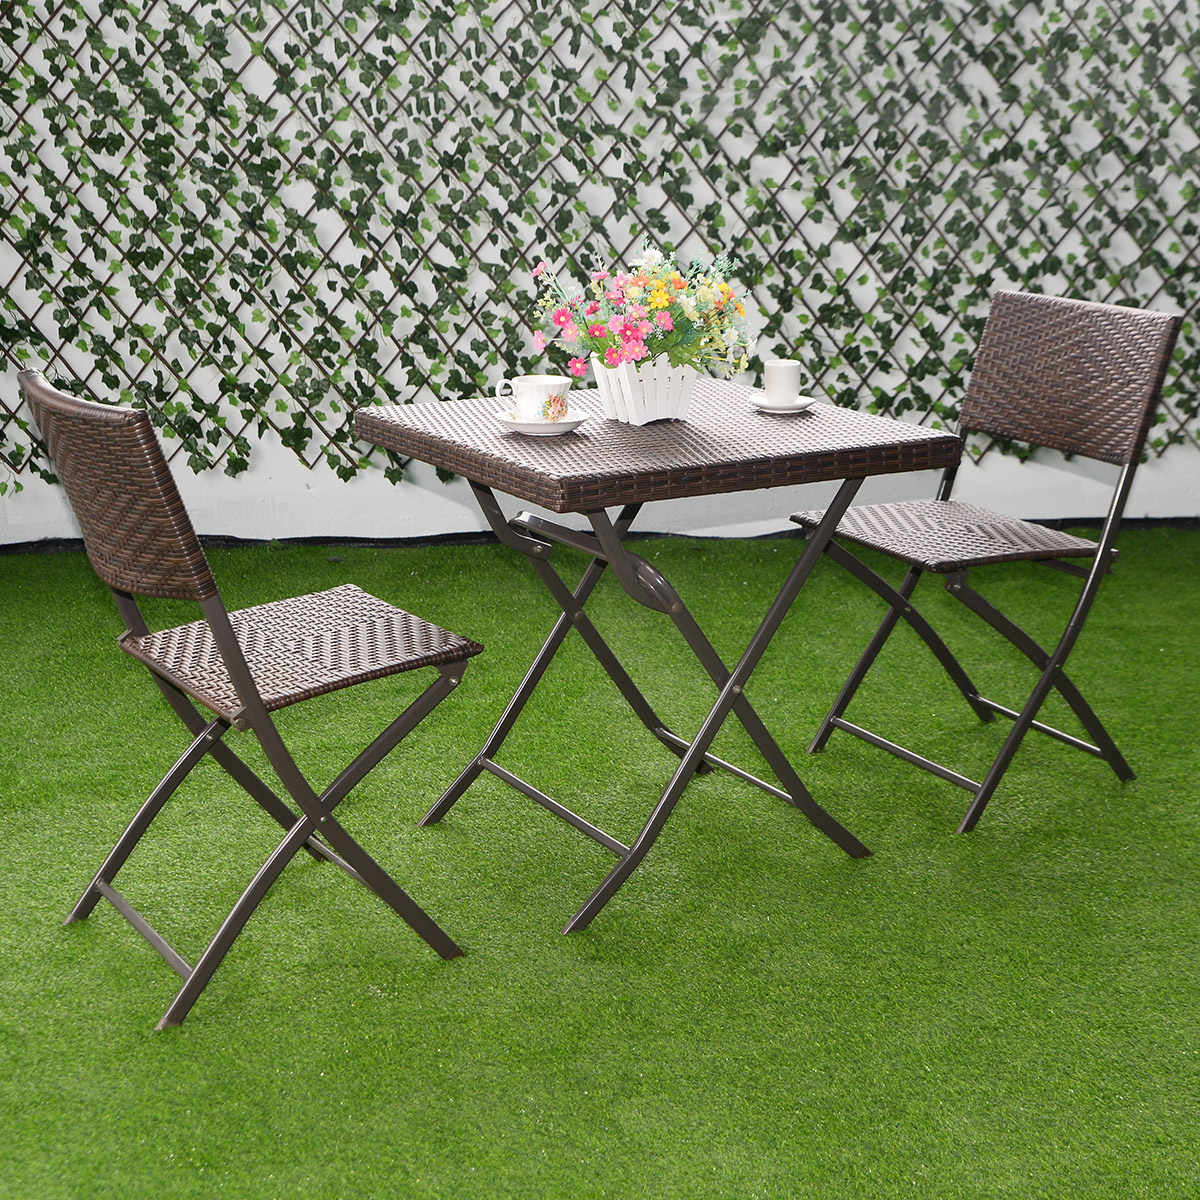 Costway 3 PC Outdoor Folding Table Chair Furniture Set Rattan Wicker Bistro Patio Brown - Walmart.com & Costway 3 PC Outdoor Folding Table Chair Furniture Set Rattan Wicker ...